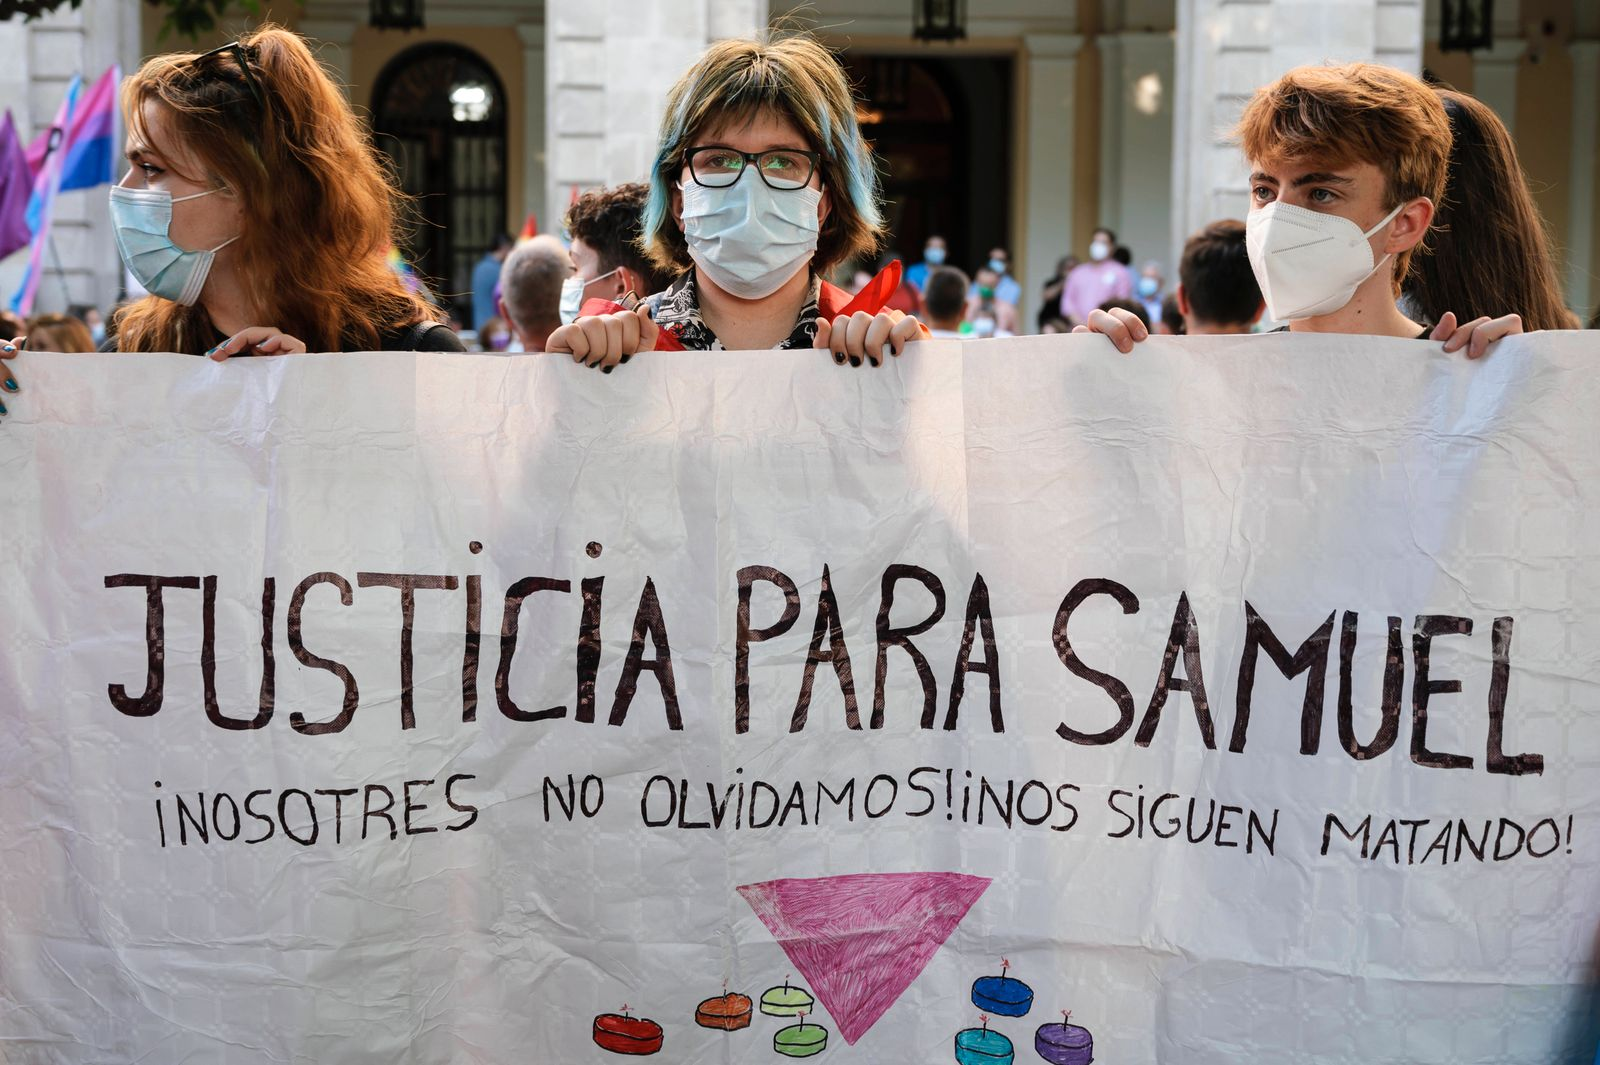 Spain: Protest demanding justice for a possible hate crime against the LGTB people Demostrators demanding justice for Sa